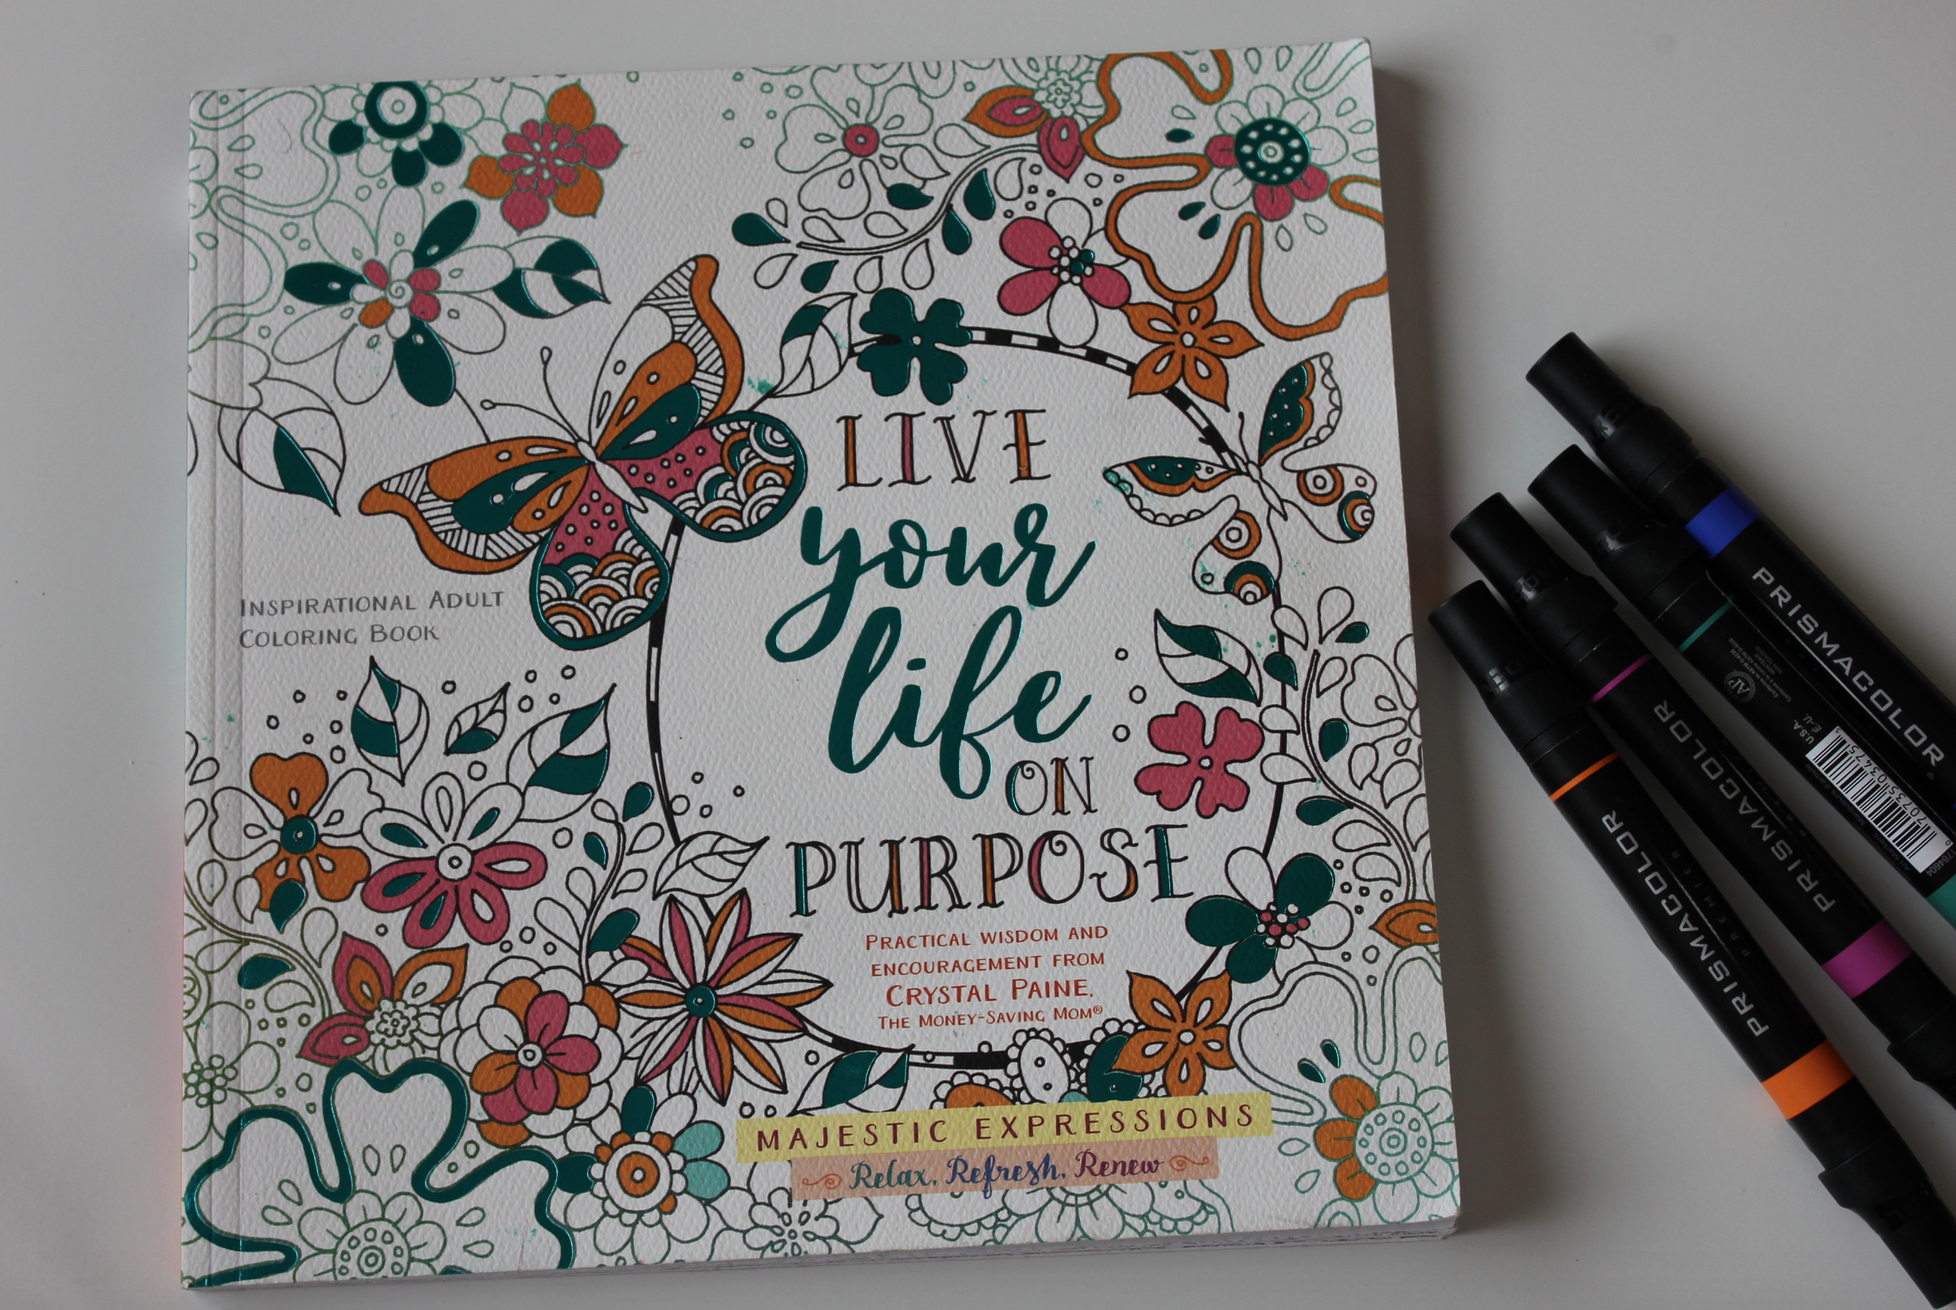 Im So Excited About Our New Live Your Life On Purpose Coloring Book As You Well Know I LOVE Adult Its Relaxing And A Great Way To Be